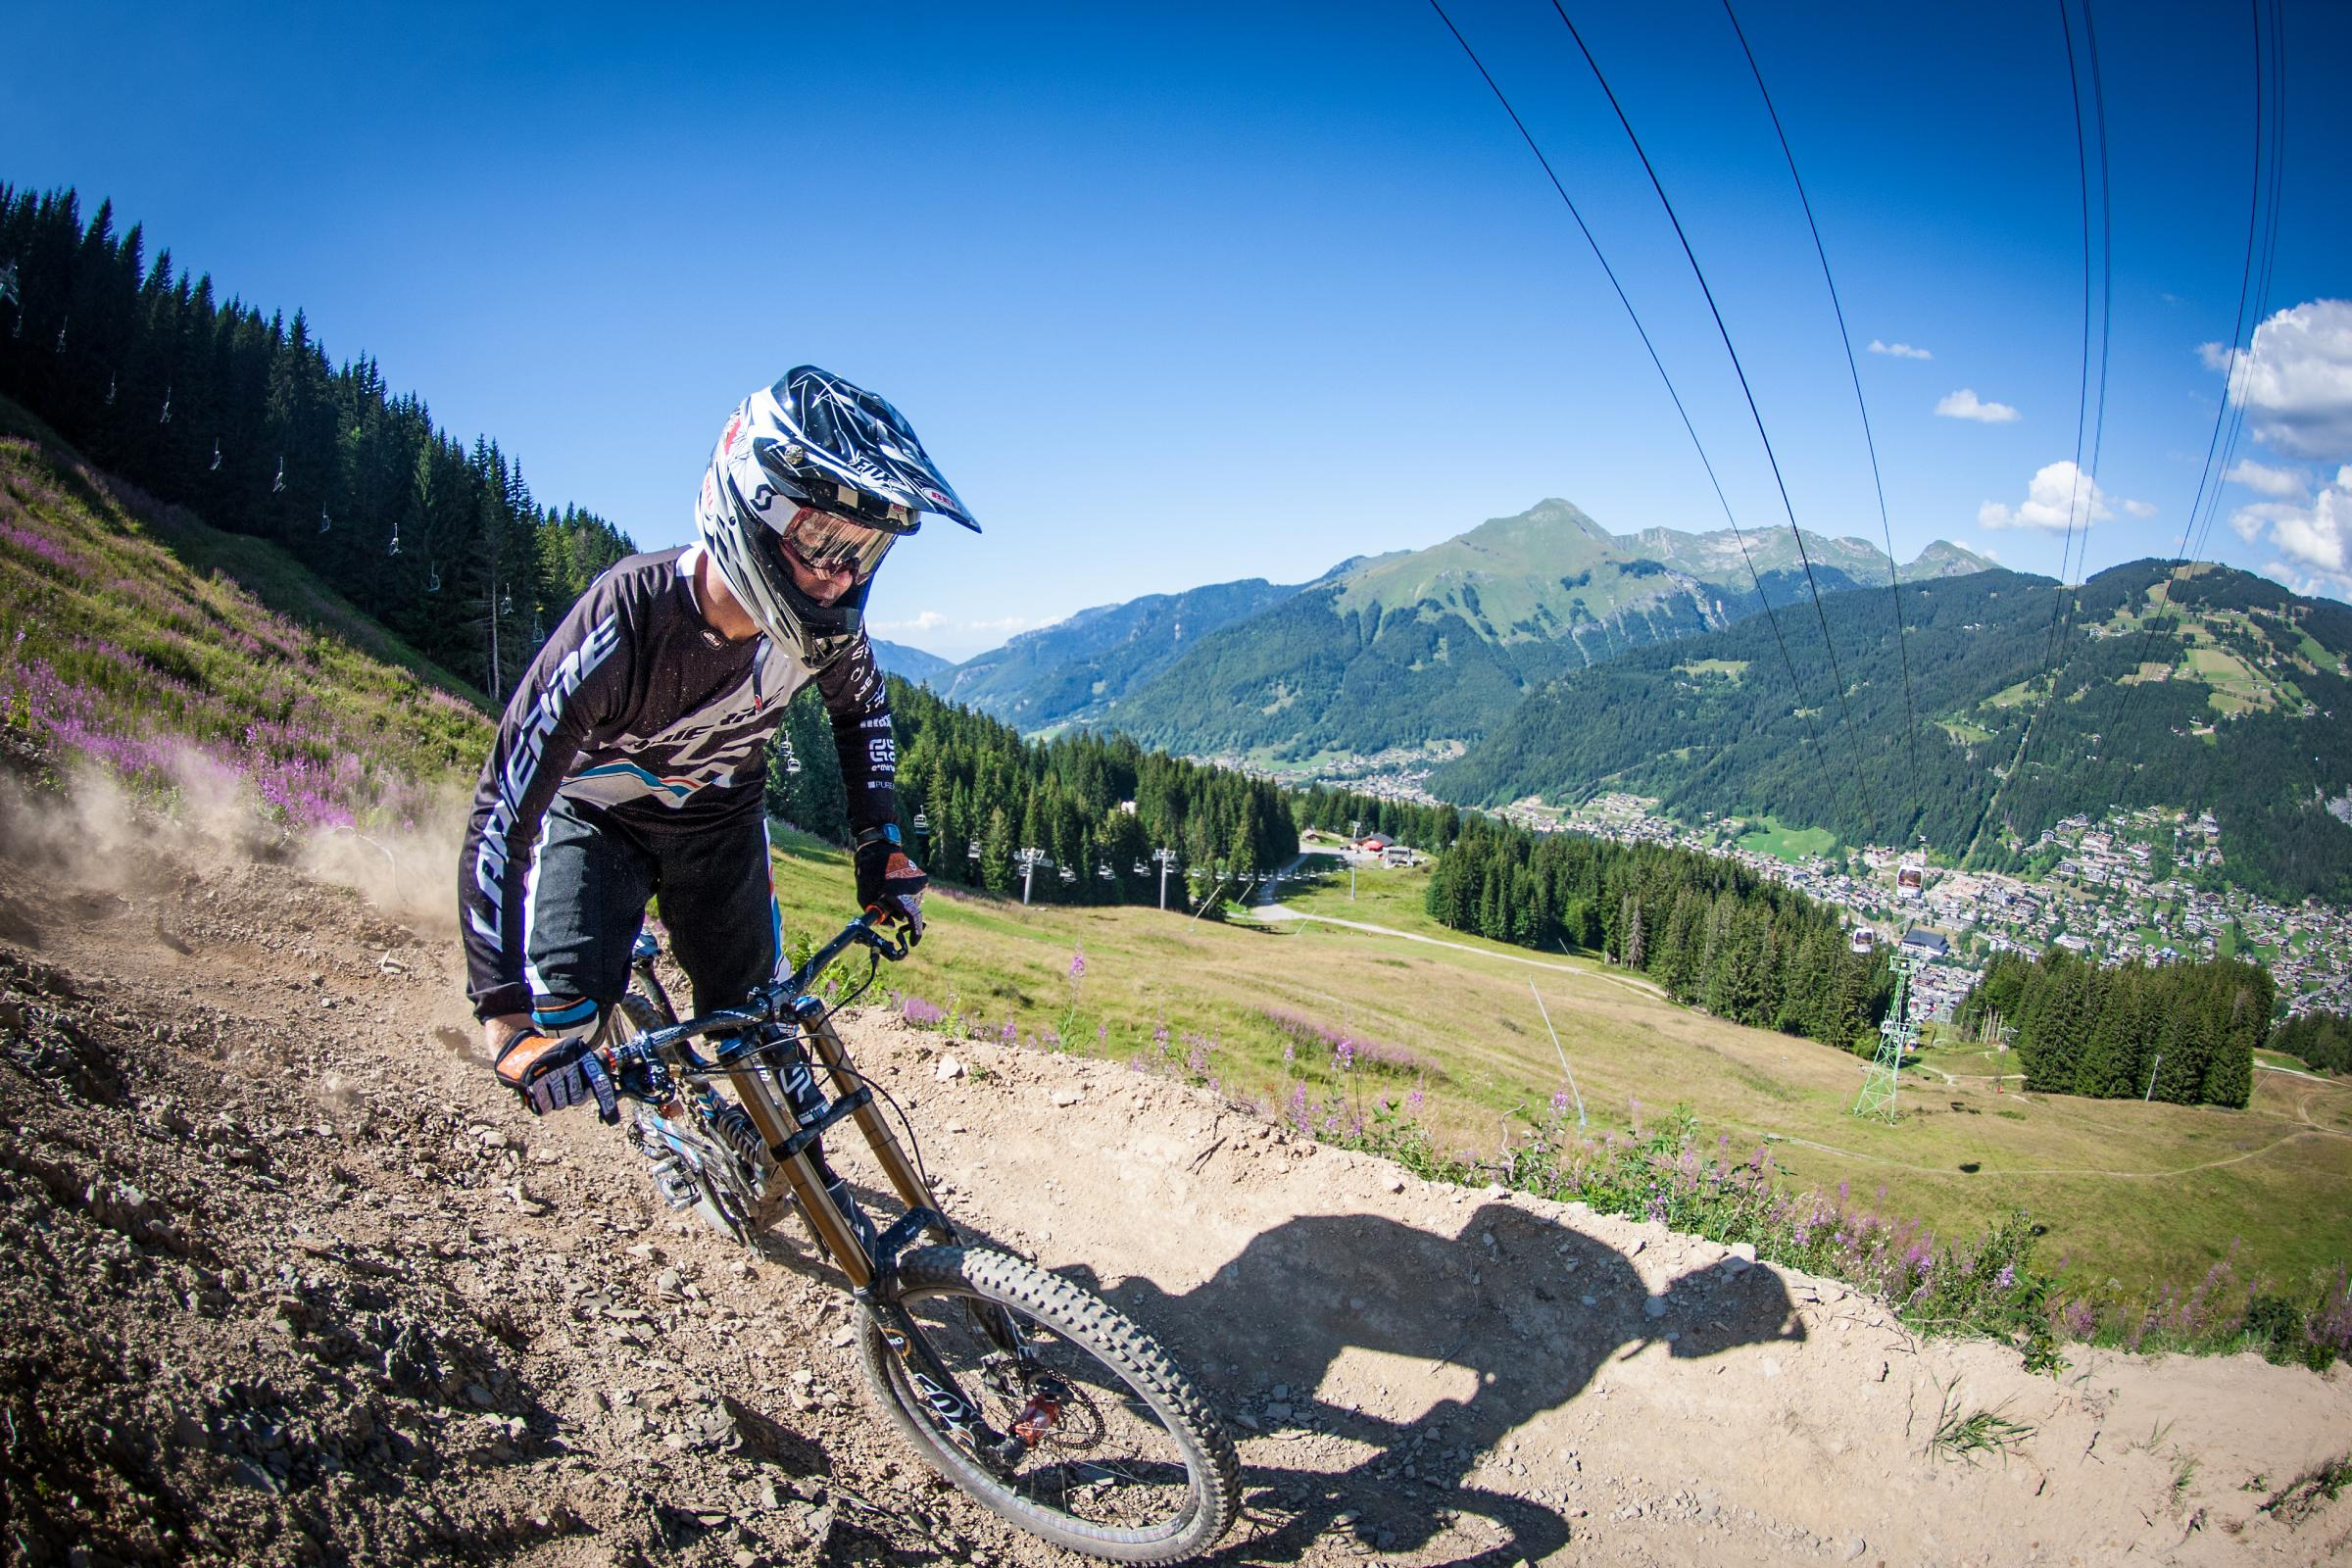 Hitting the heights at Morzine (Picture: Damian McArthur)